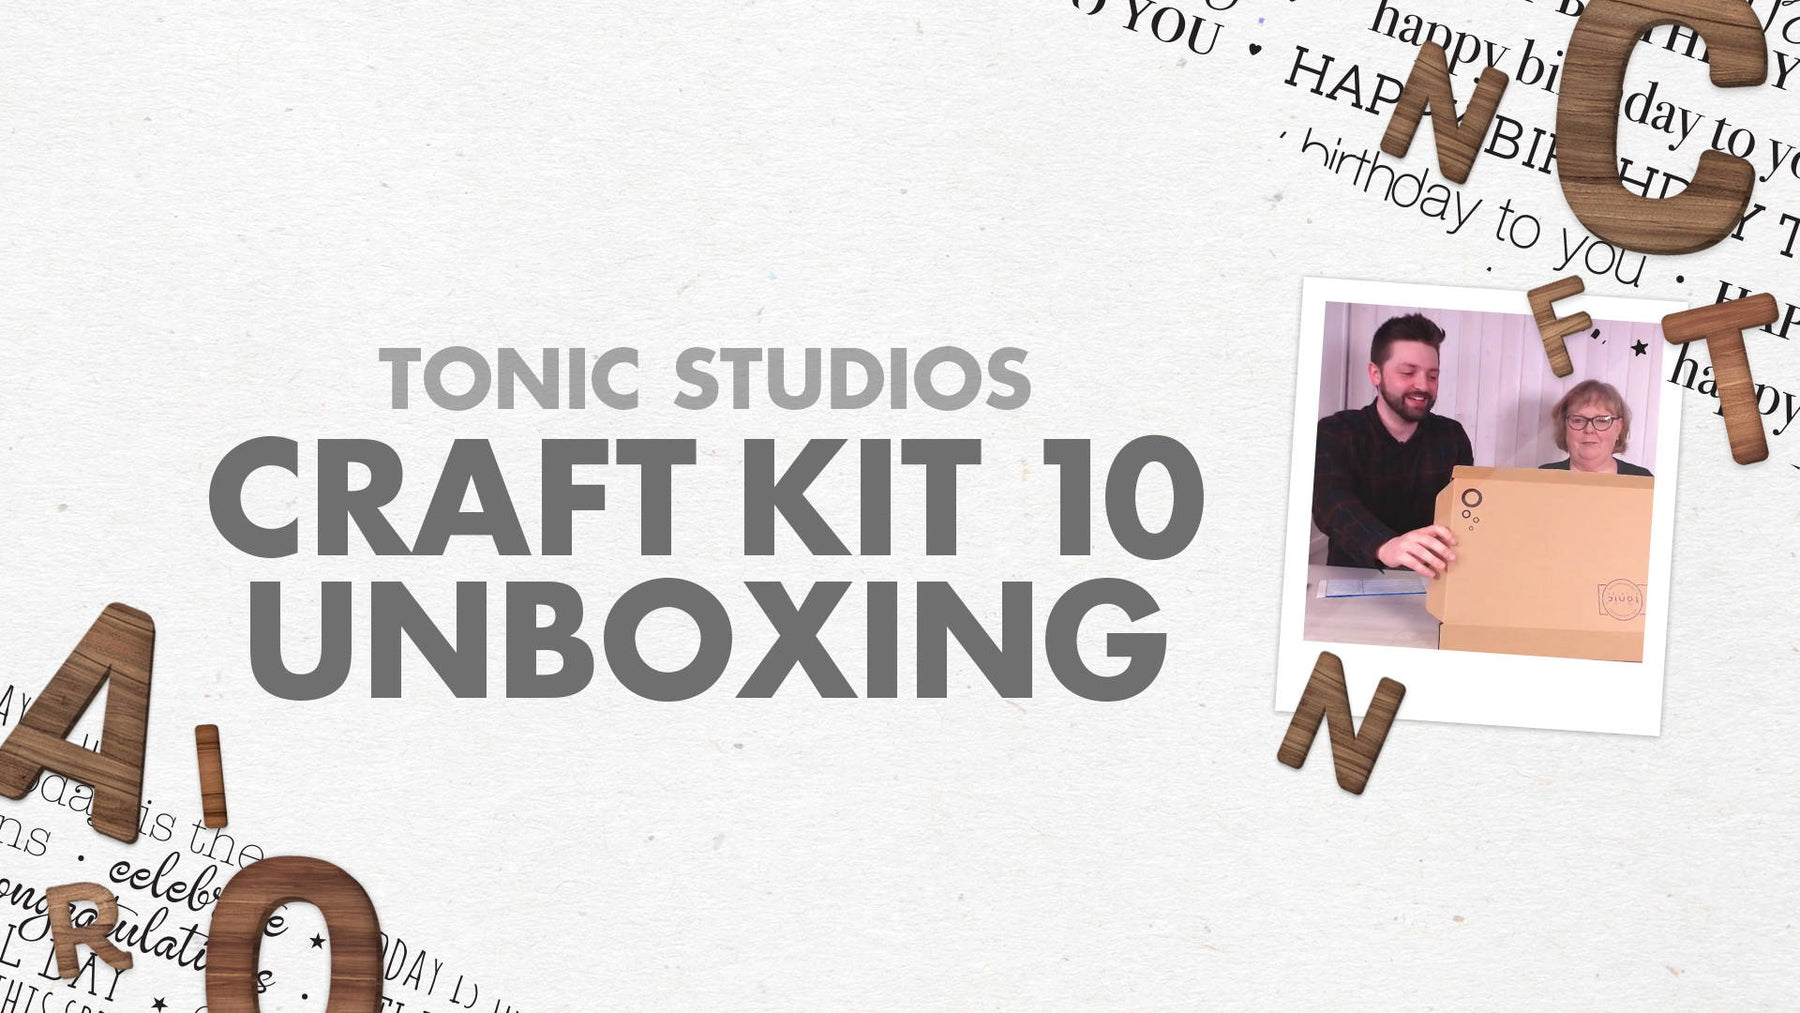 Tonic Craft Kit 10 - Alphabet Frame Unboxing - Tonic Studios